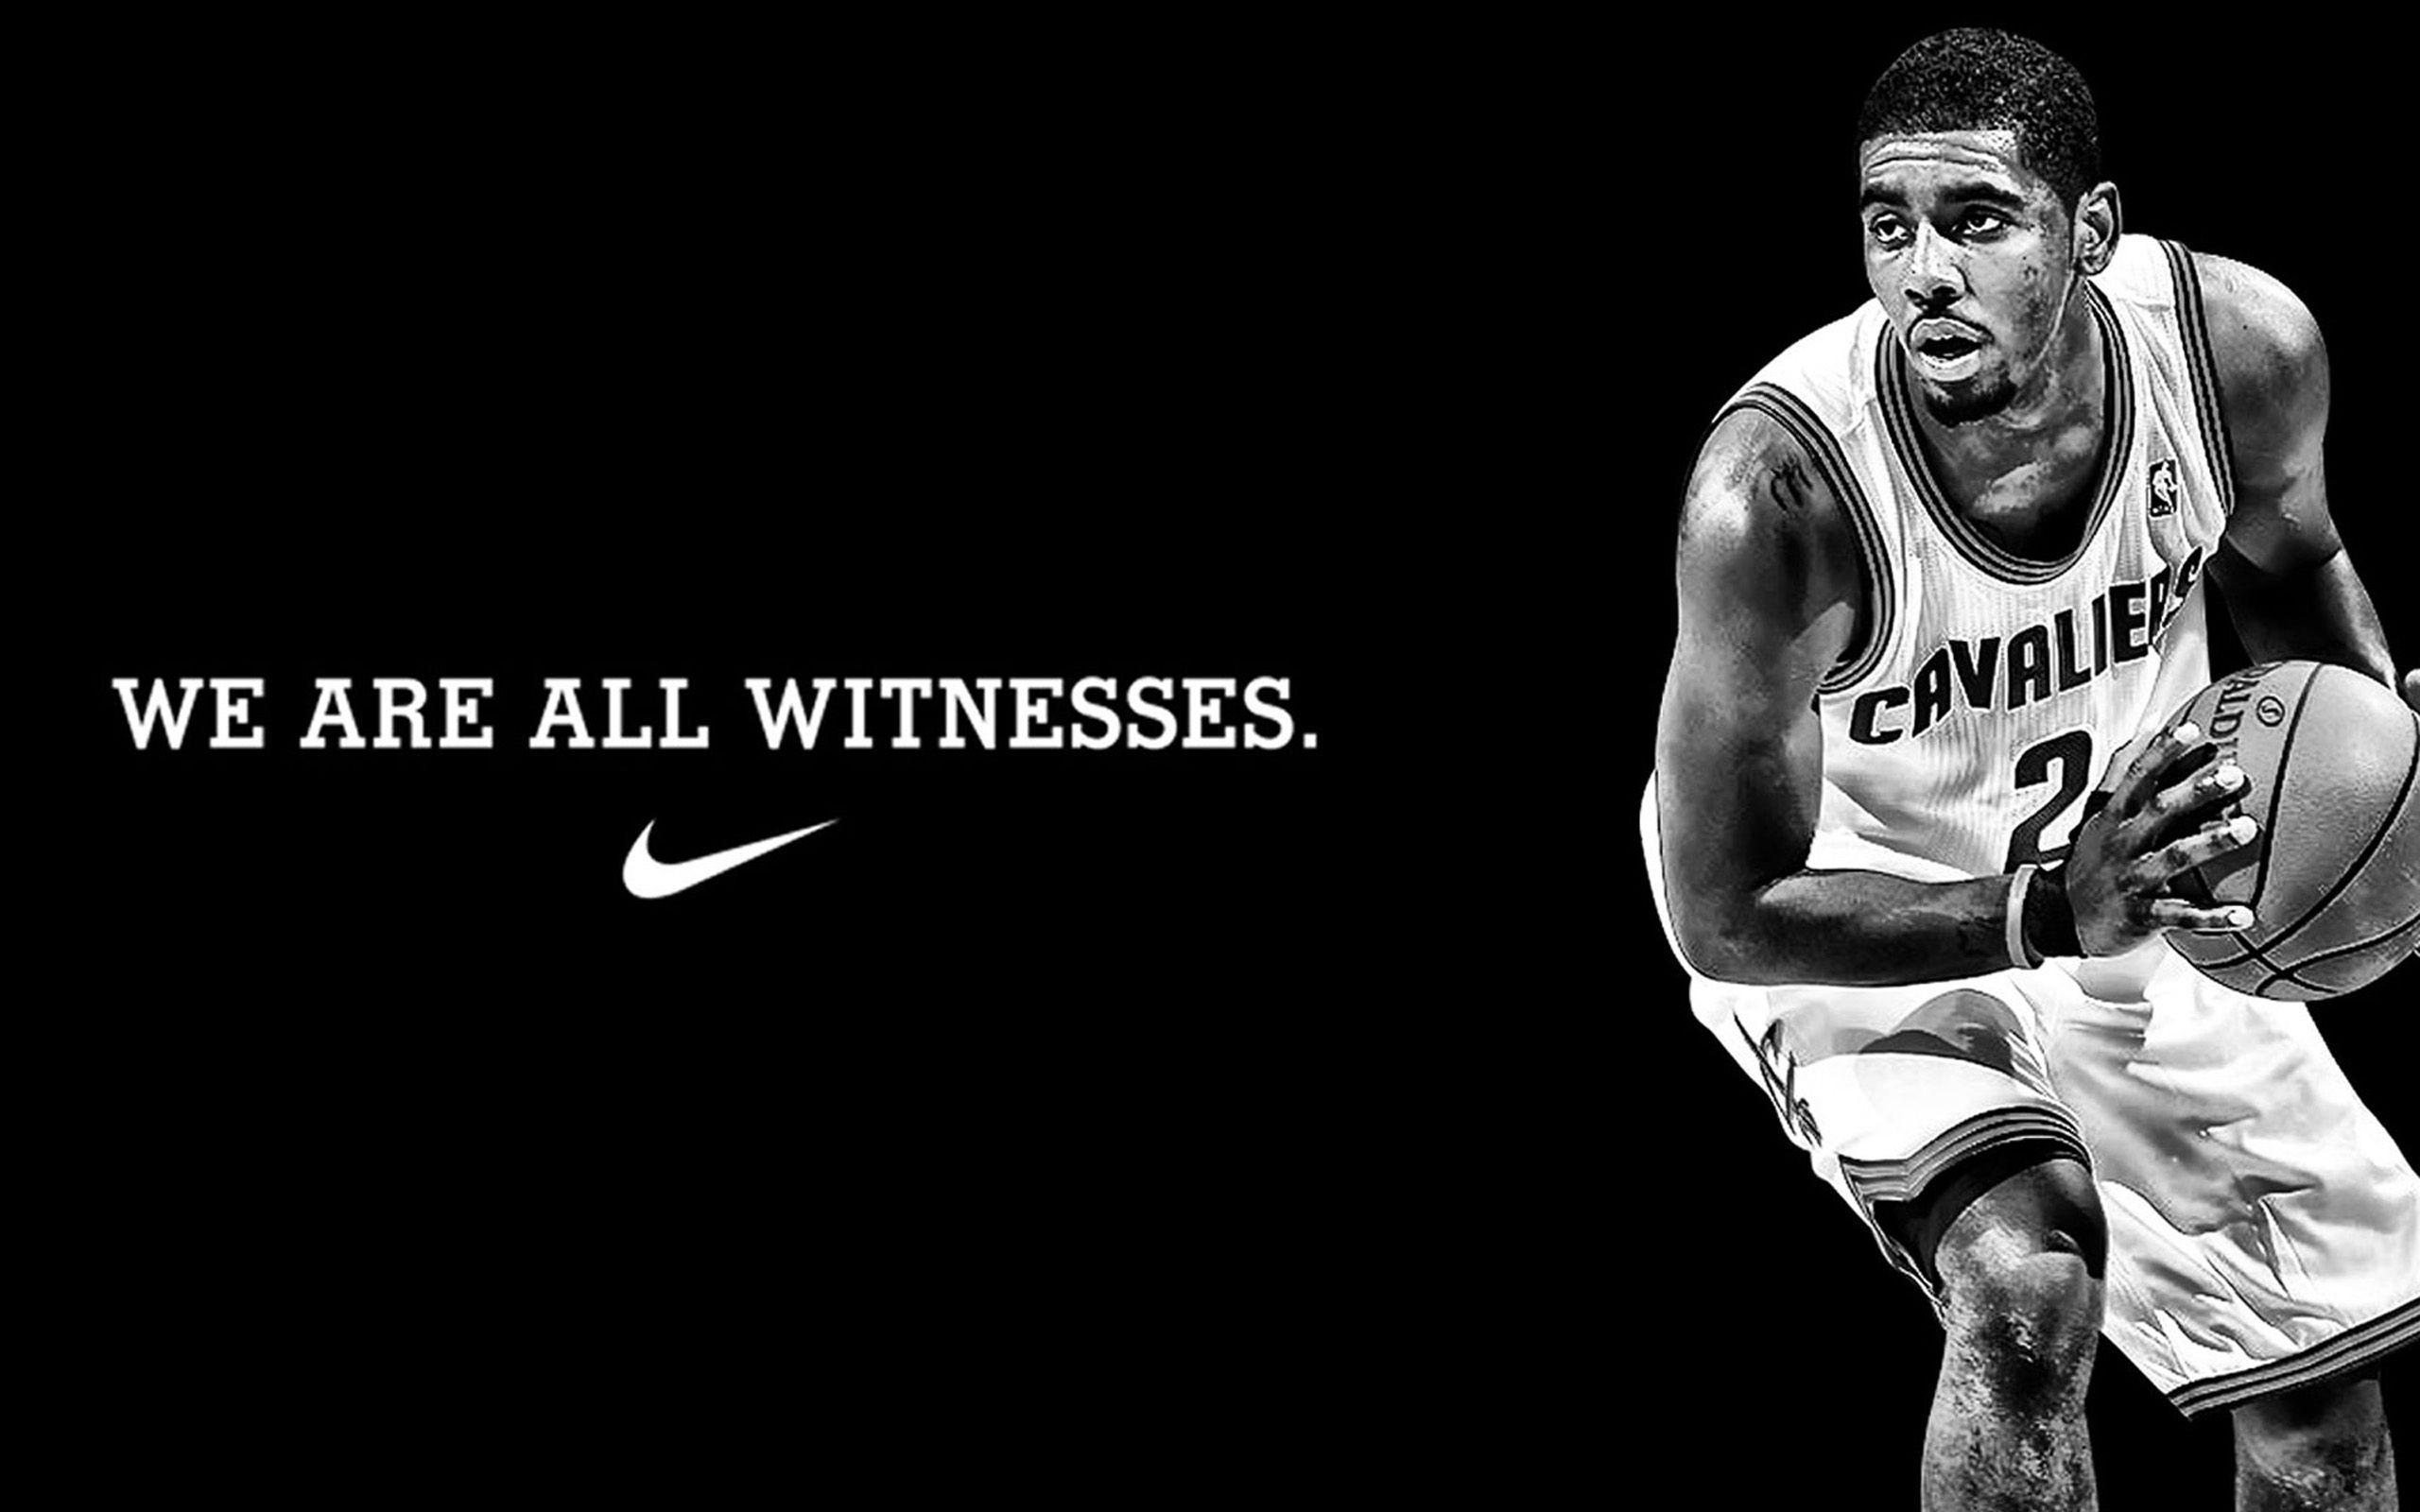 Food For Laughs likewise Nike Wallpaper Basketball further Black And White Skinny Man Images likewise Amy Adams Enchanted 2 likewise Sesame Street Movie Shawn Levy. on oscar robertson cartoon